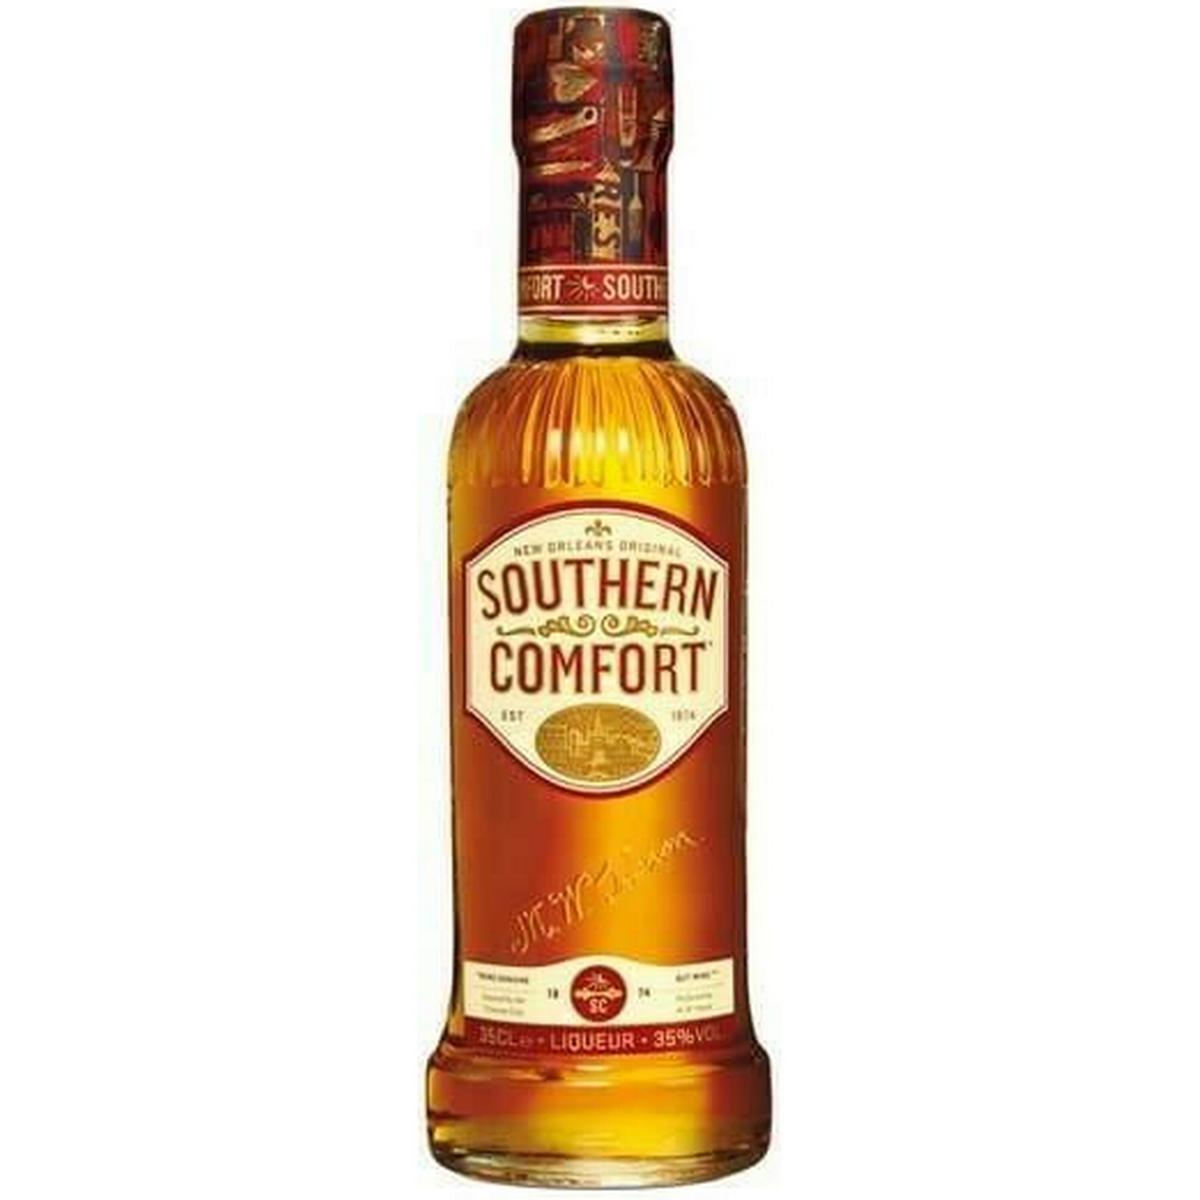 Pin on Southern Comfort